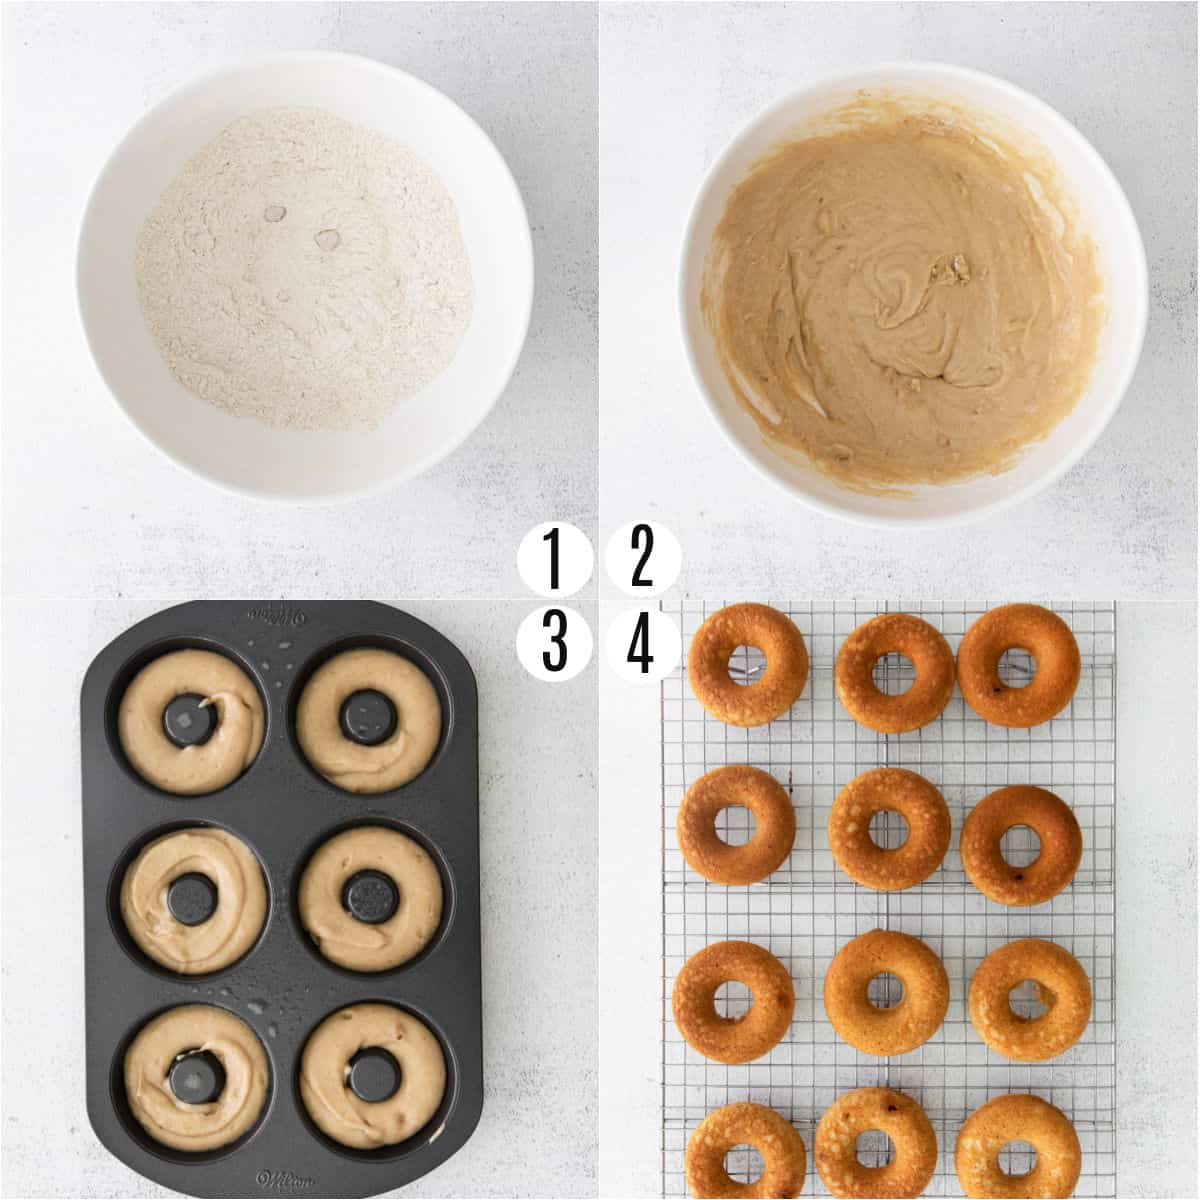 Step by step photos showing how to make chai donuts in the oven,